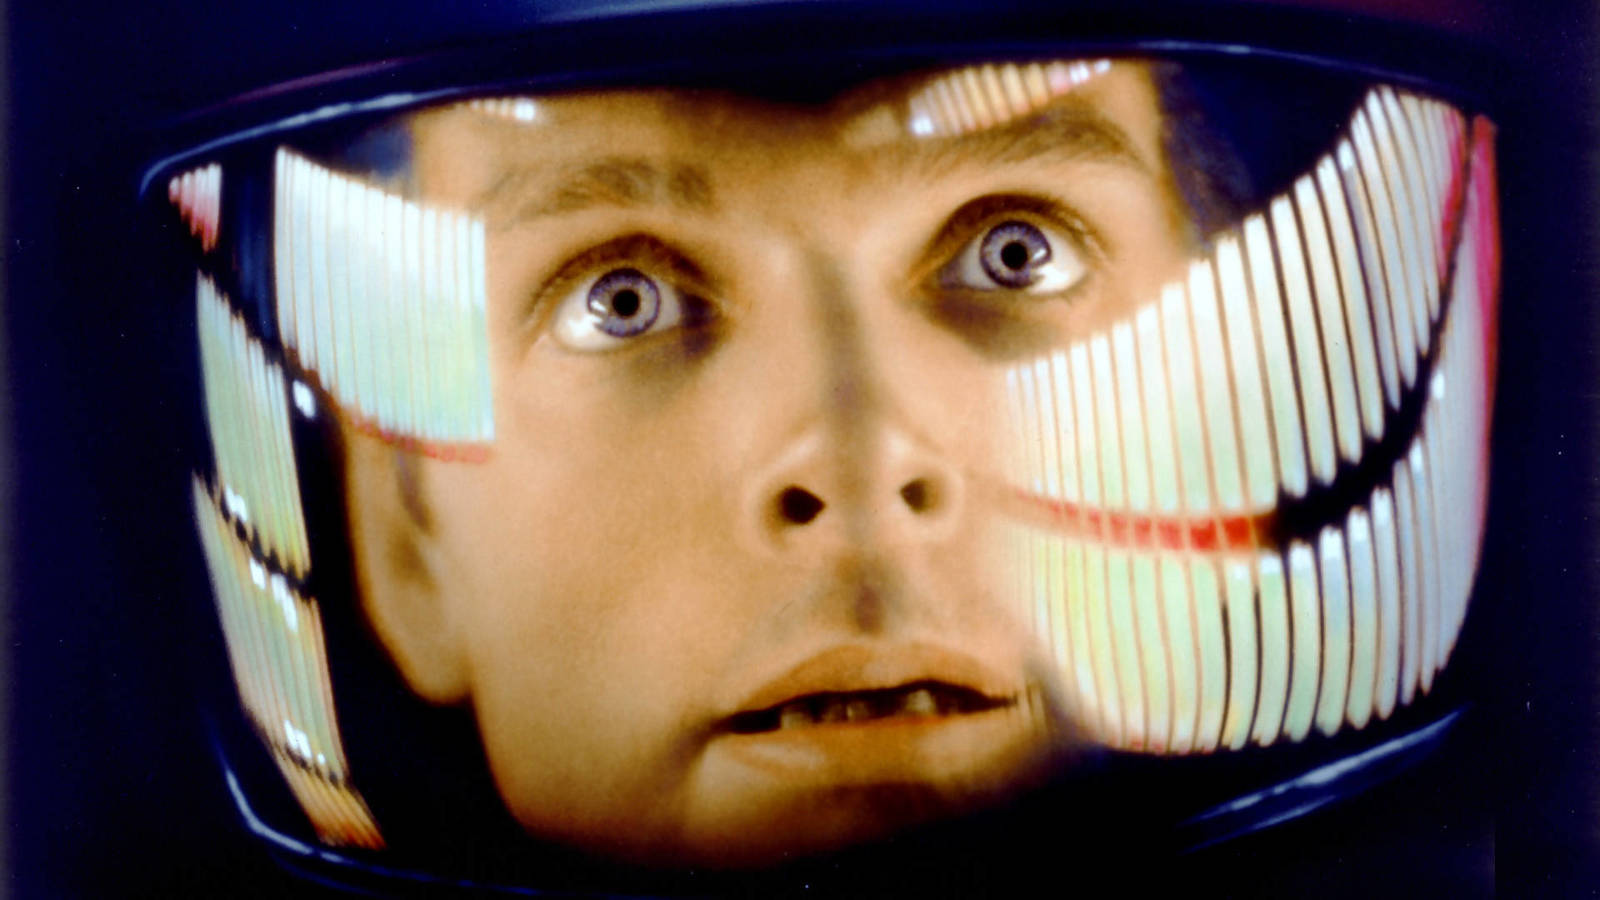 2001 A Space Odyssey Porn Video references to '2001: a space odyssey' across pop culture